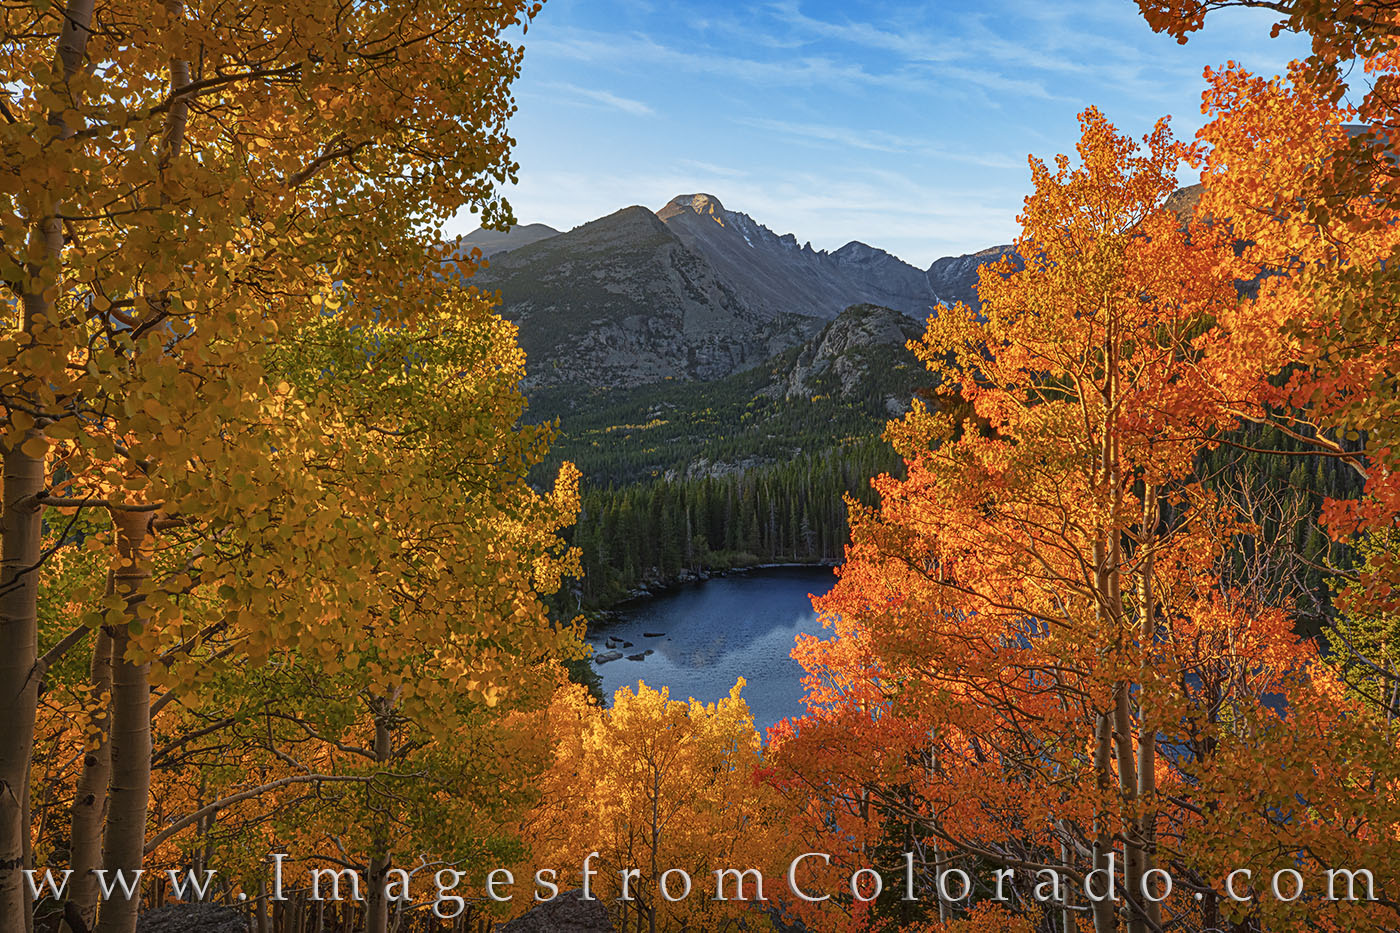 At the moment the first sunlight reaches the orange and gold aspen leaves above Bear Lake, the morning is suddenly ablaze in...